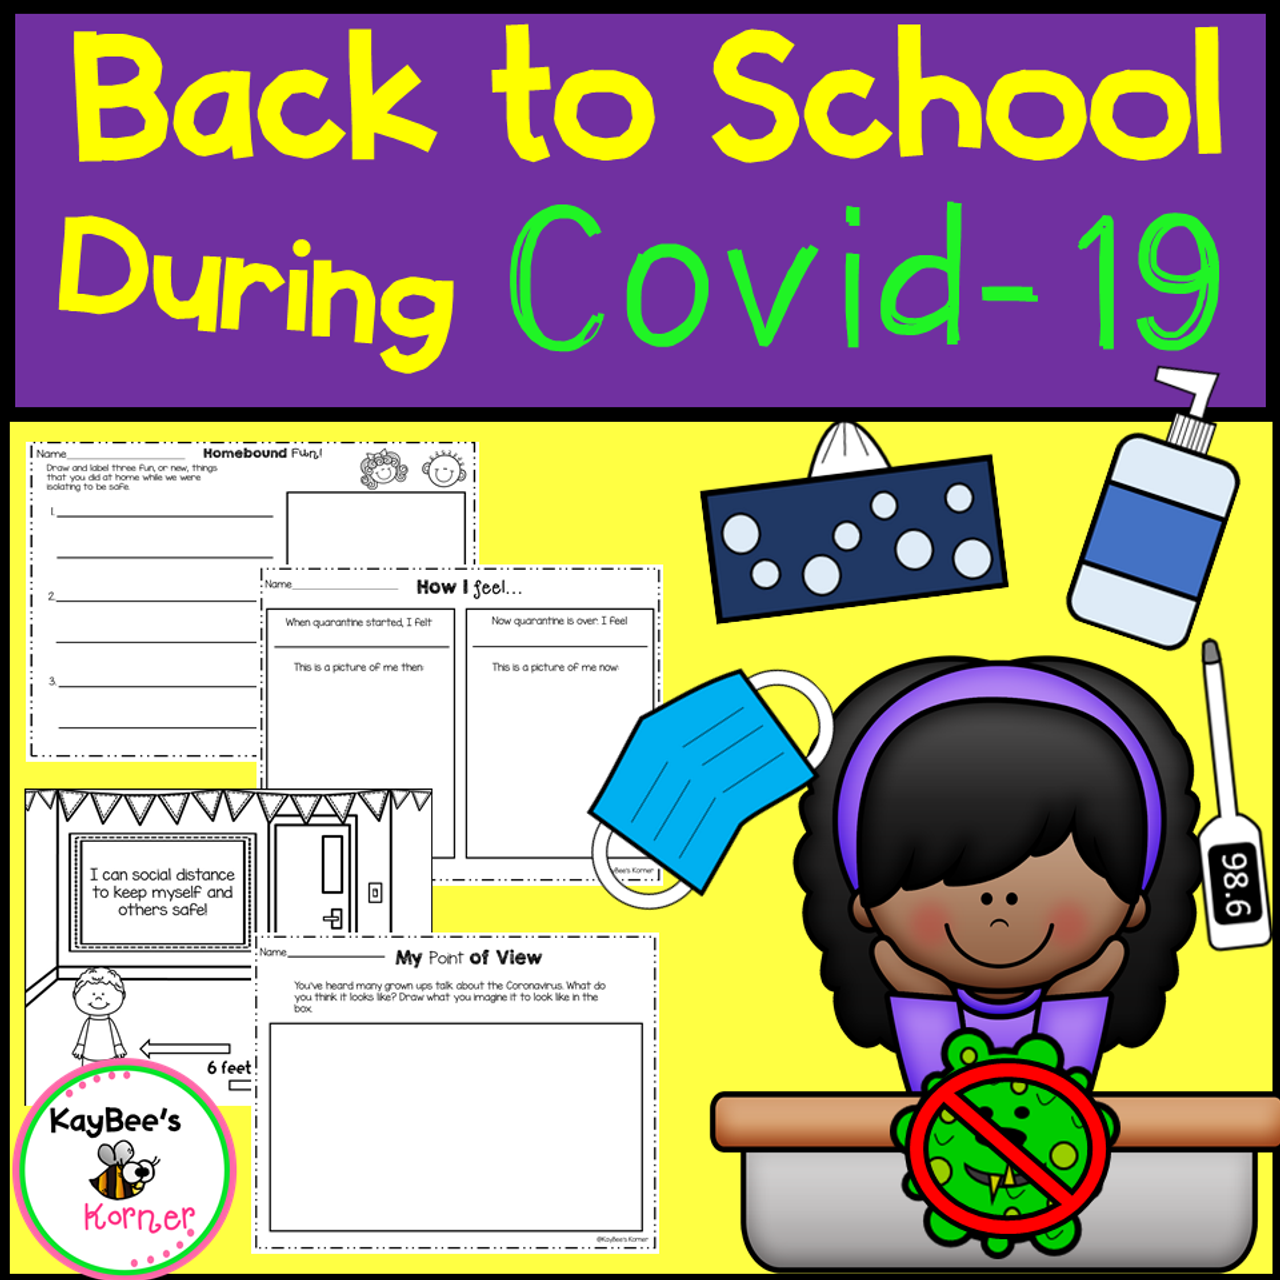 Back to school after Covid-19 and Distance Learning